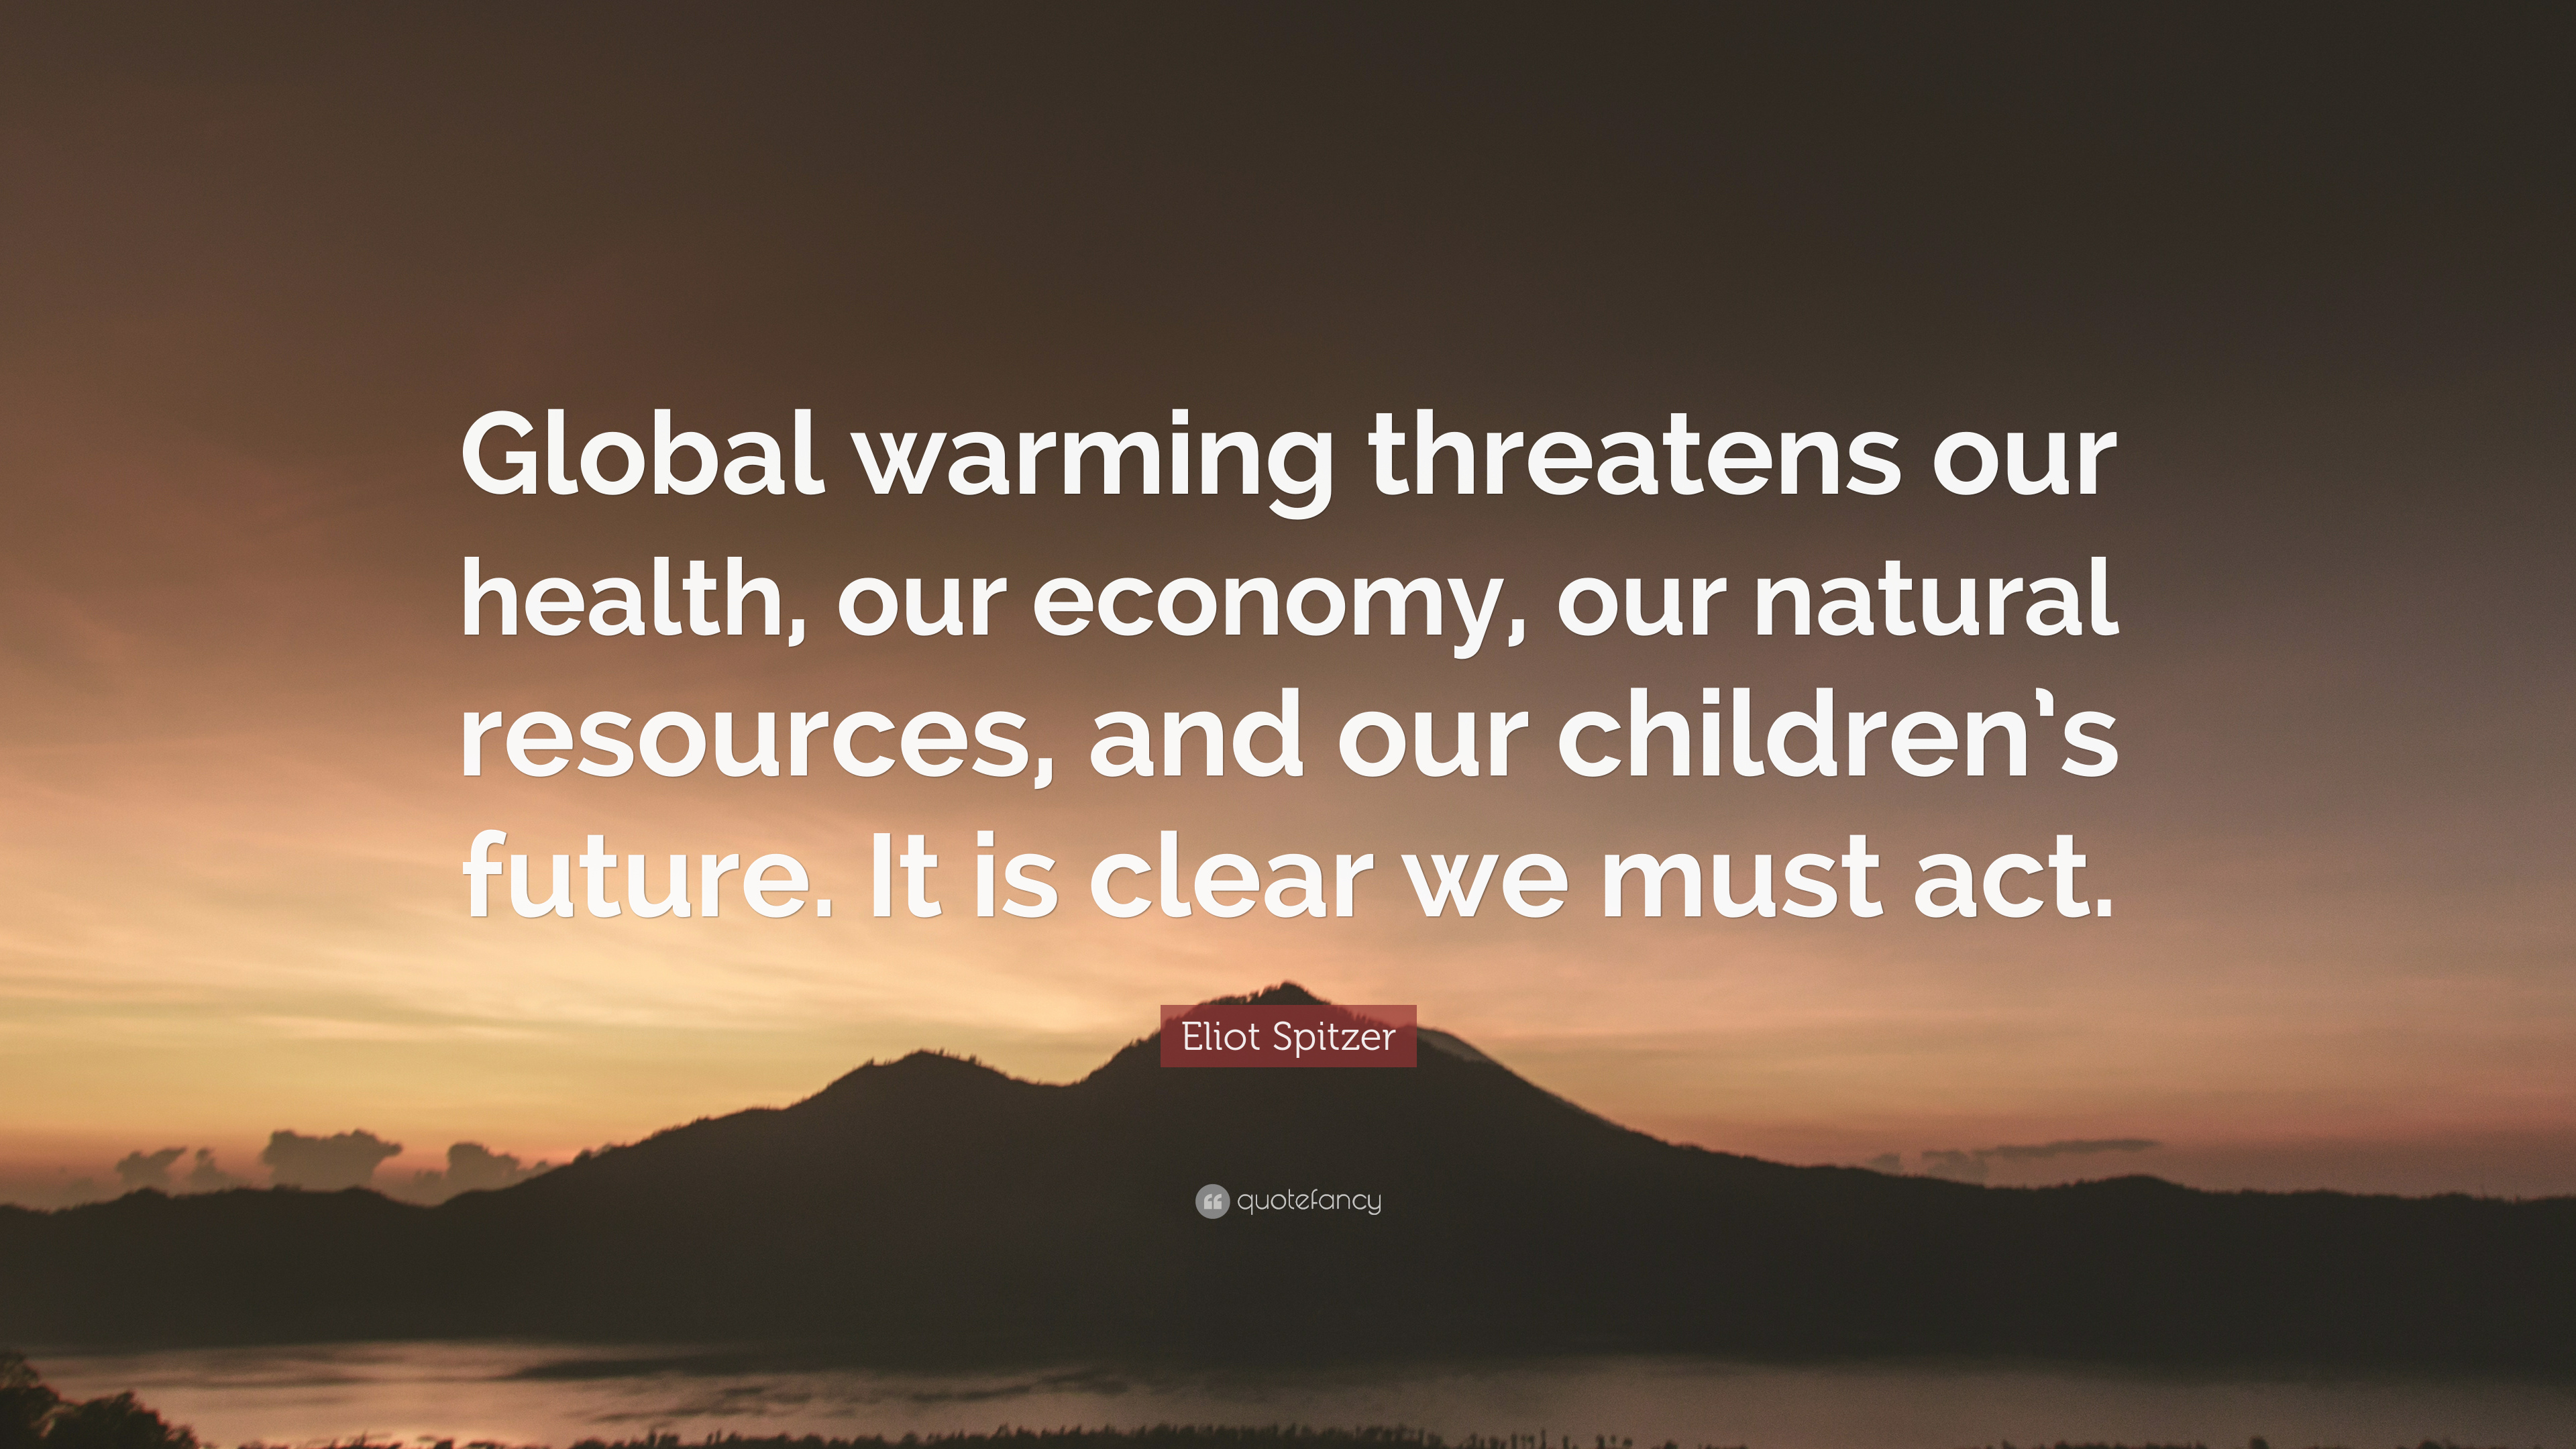 Global Warming Quotes Eliot Spitzer Quotes 54 Wallpapers  Quotefancy